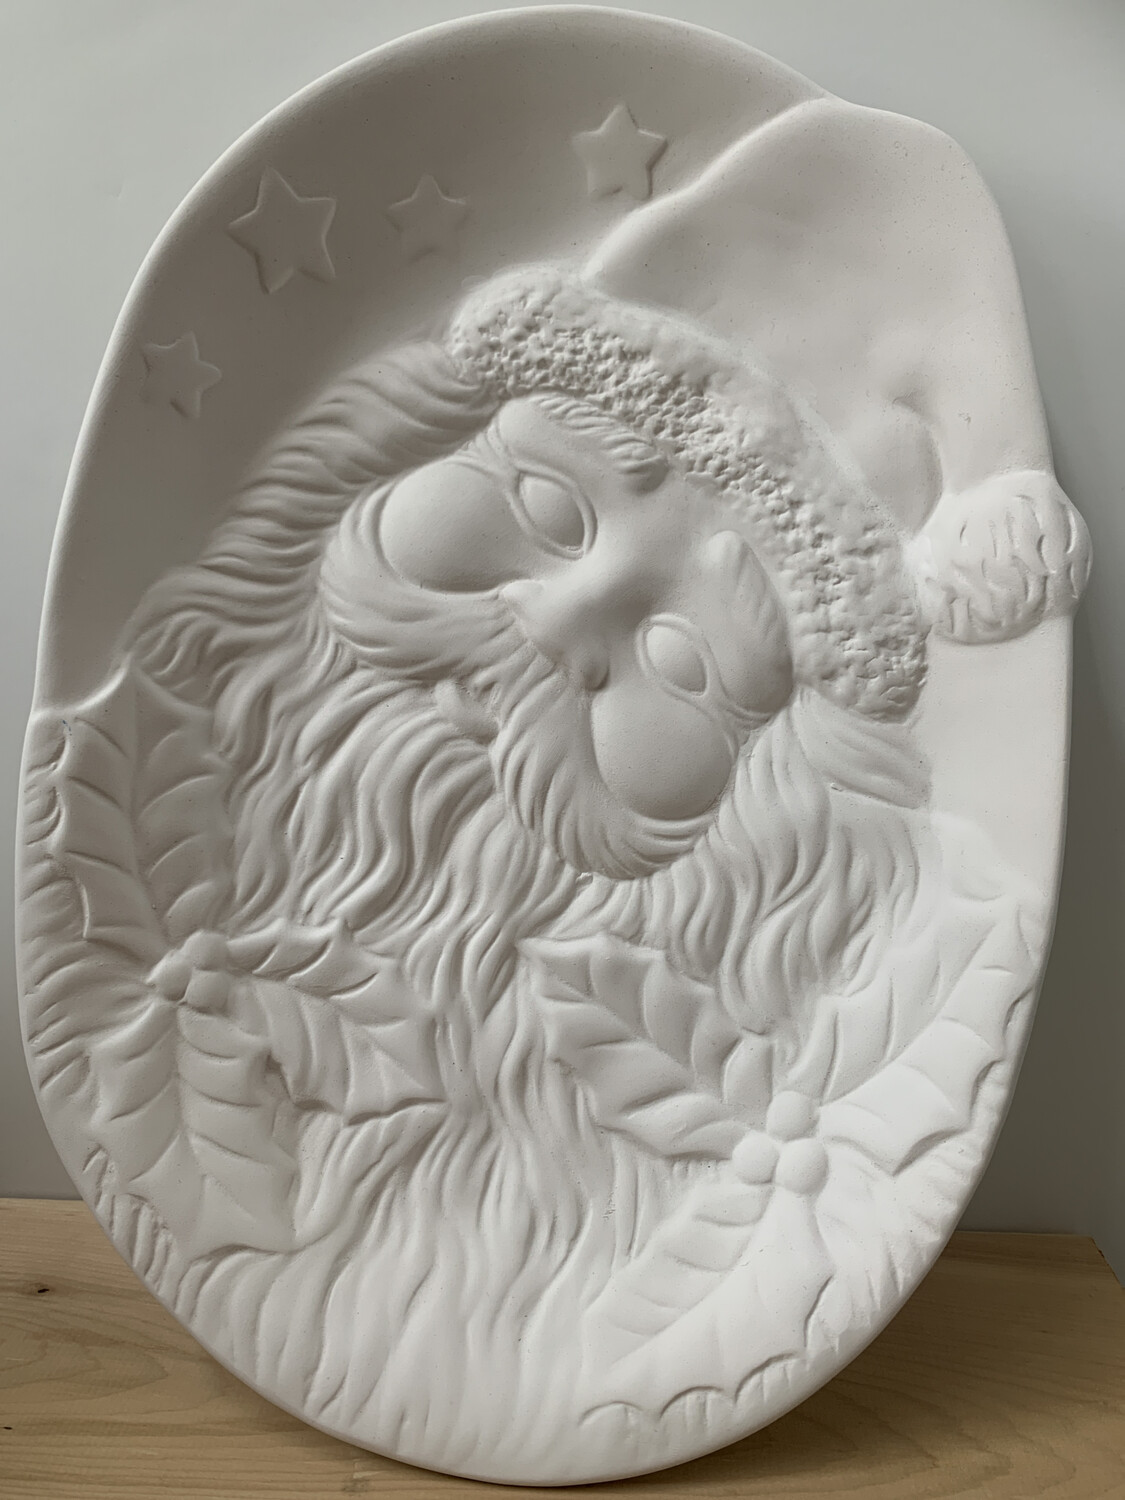 Paint Your Own Pottery - Ceramic   Santa Cookie Plate Painting Kit